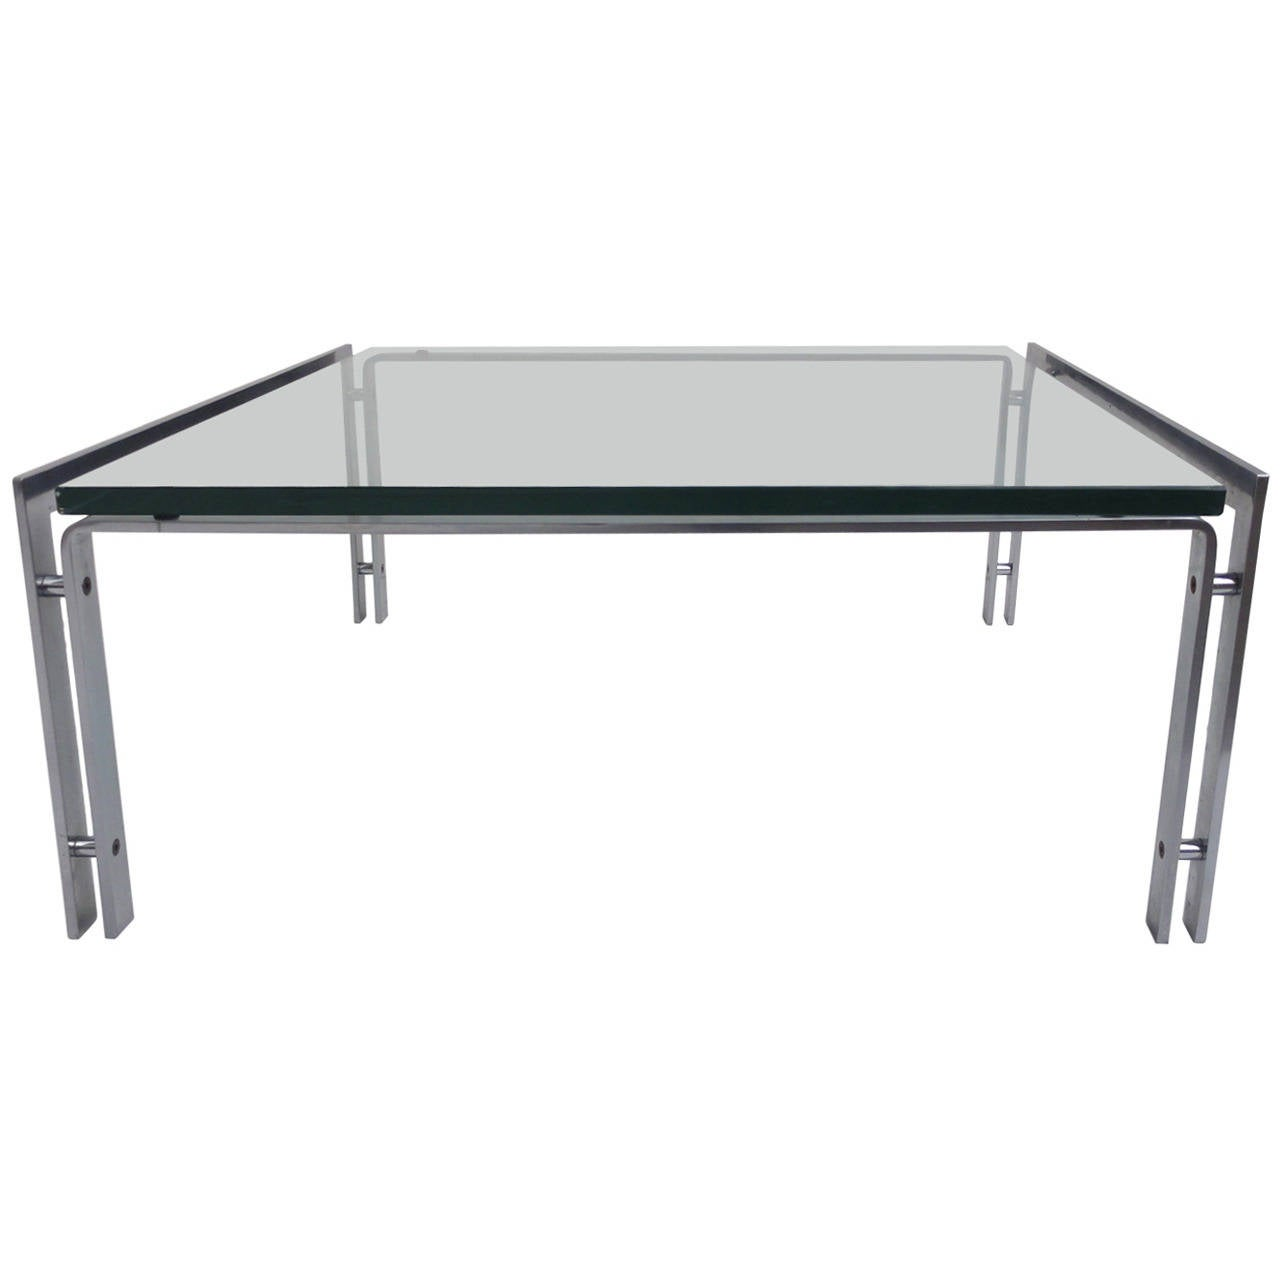 Dutch Metaform Steel And Glass Coffee Table In The Style Of Poul Kjaerholm For Sale At 1stdibs